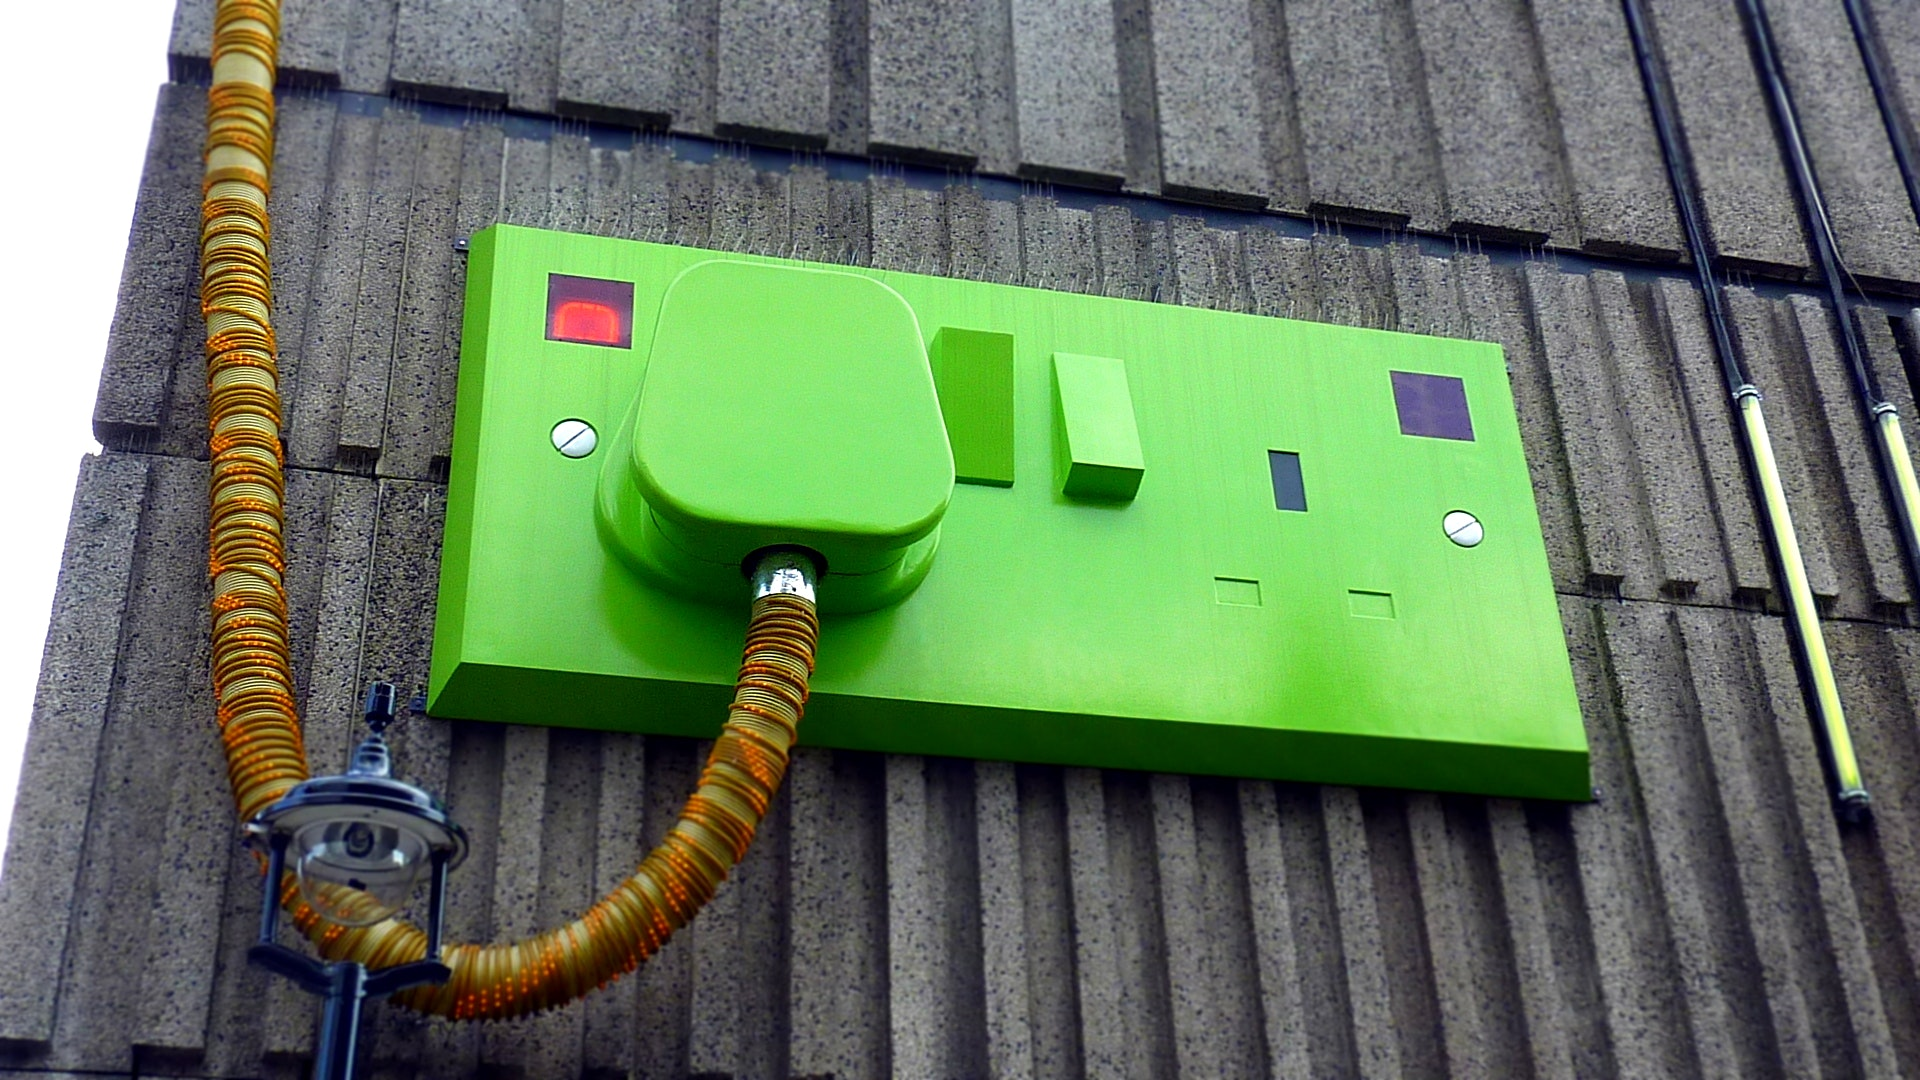 Green rectangular corded machine on grey wall during daytime photo